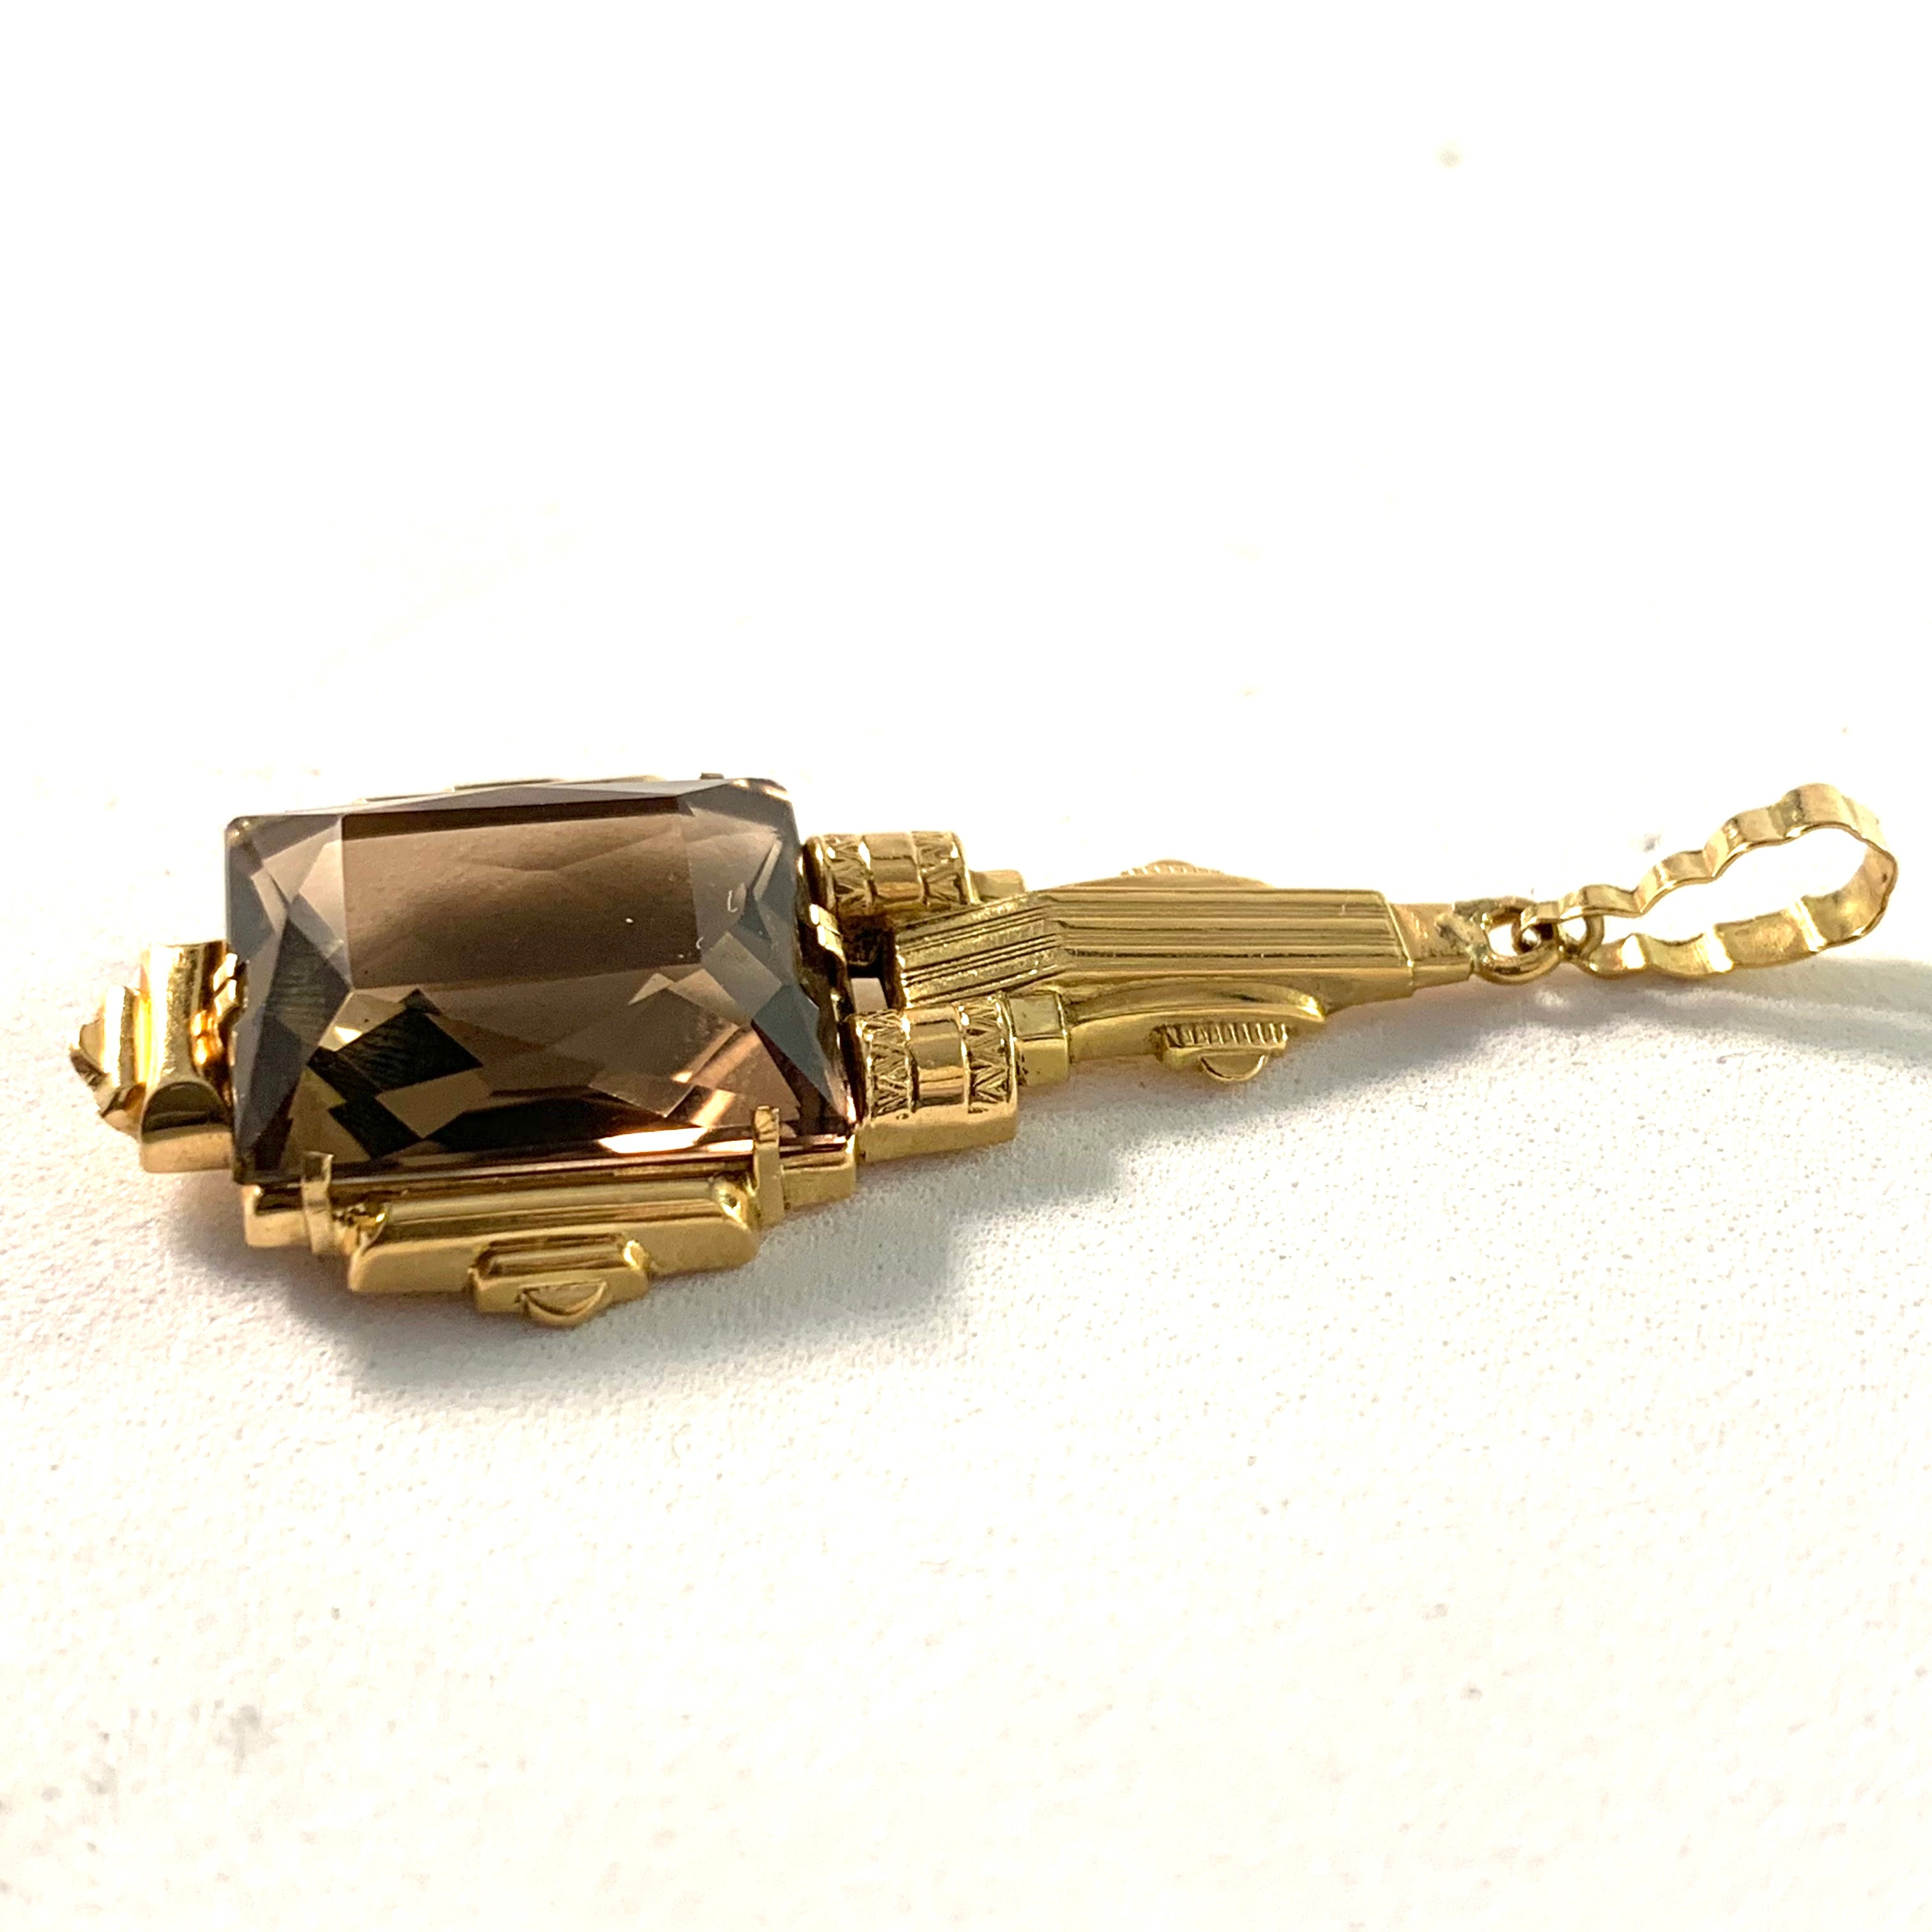 Art Deco 1930s 18k Gold Smoky Quartz Pendant.